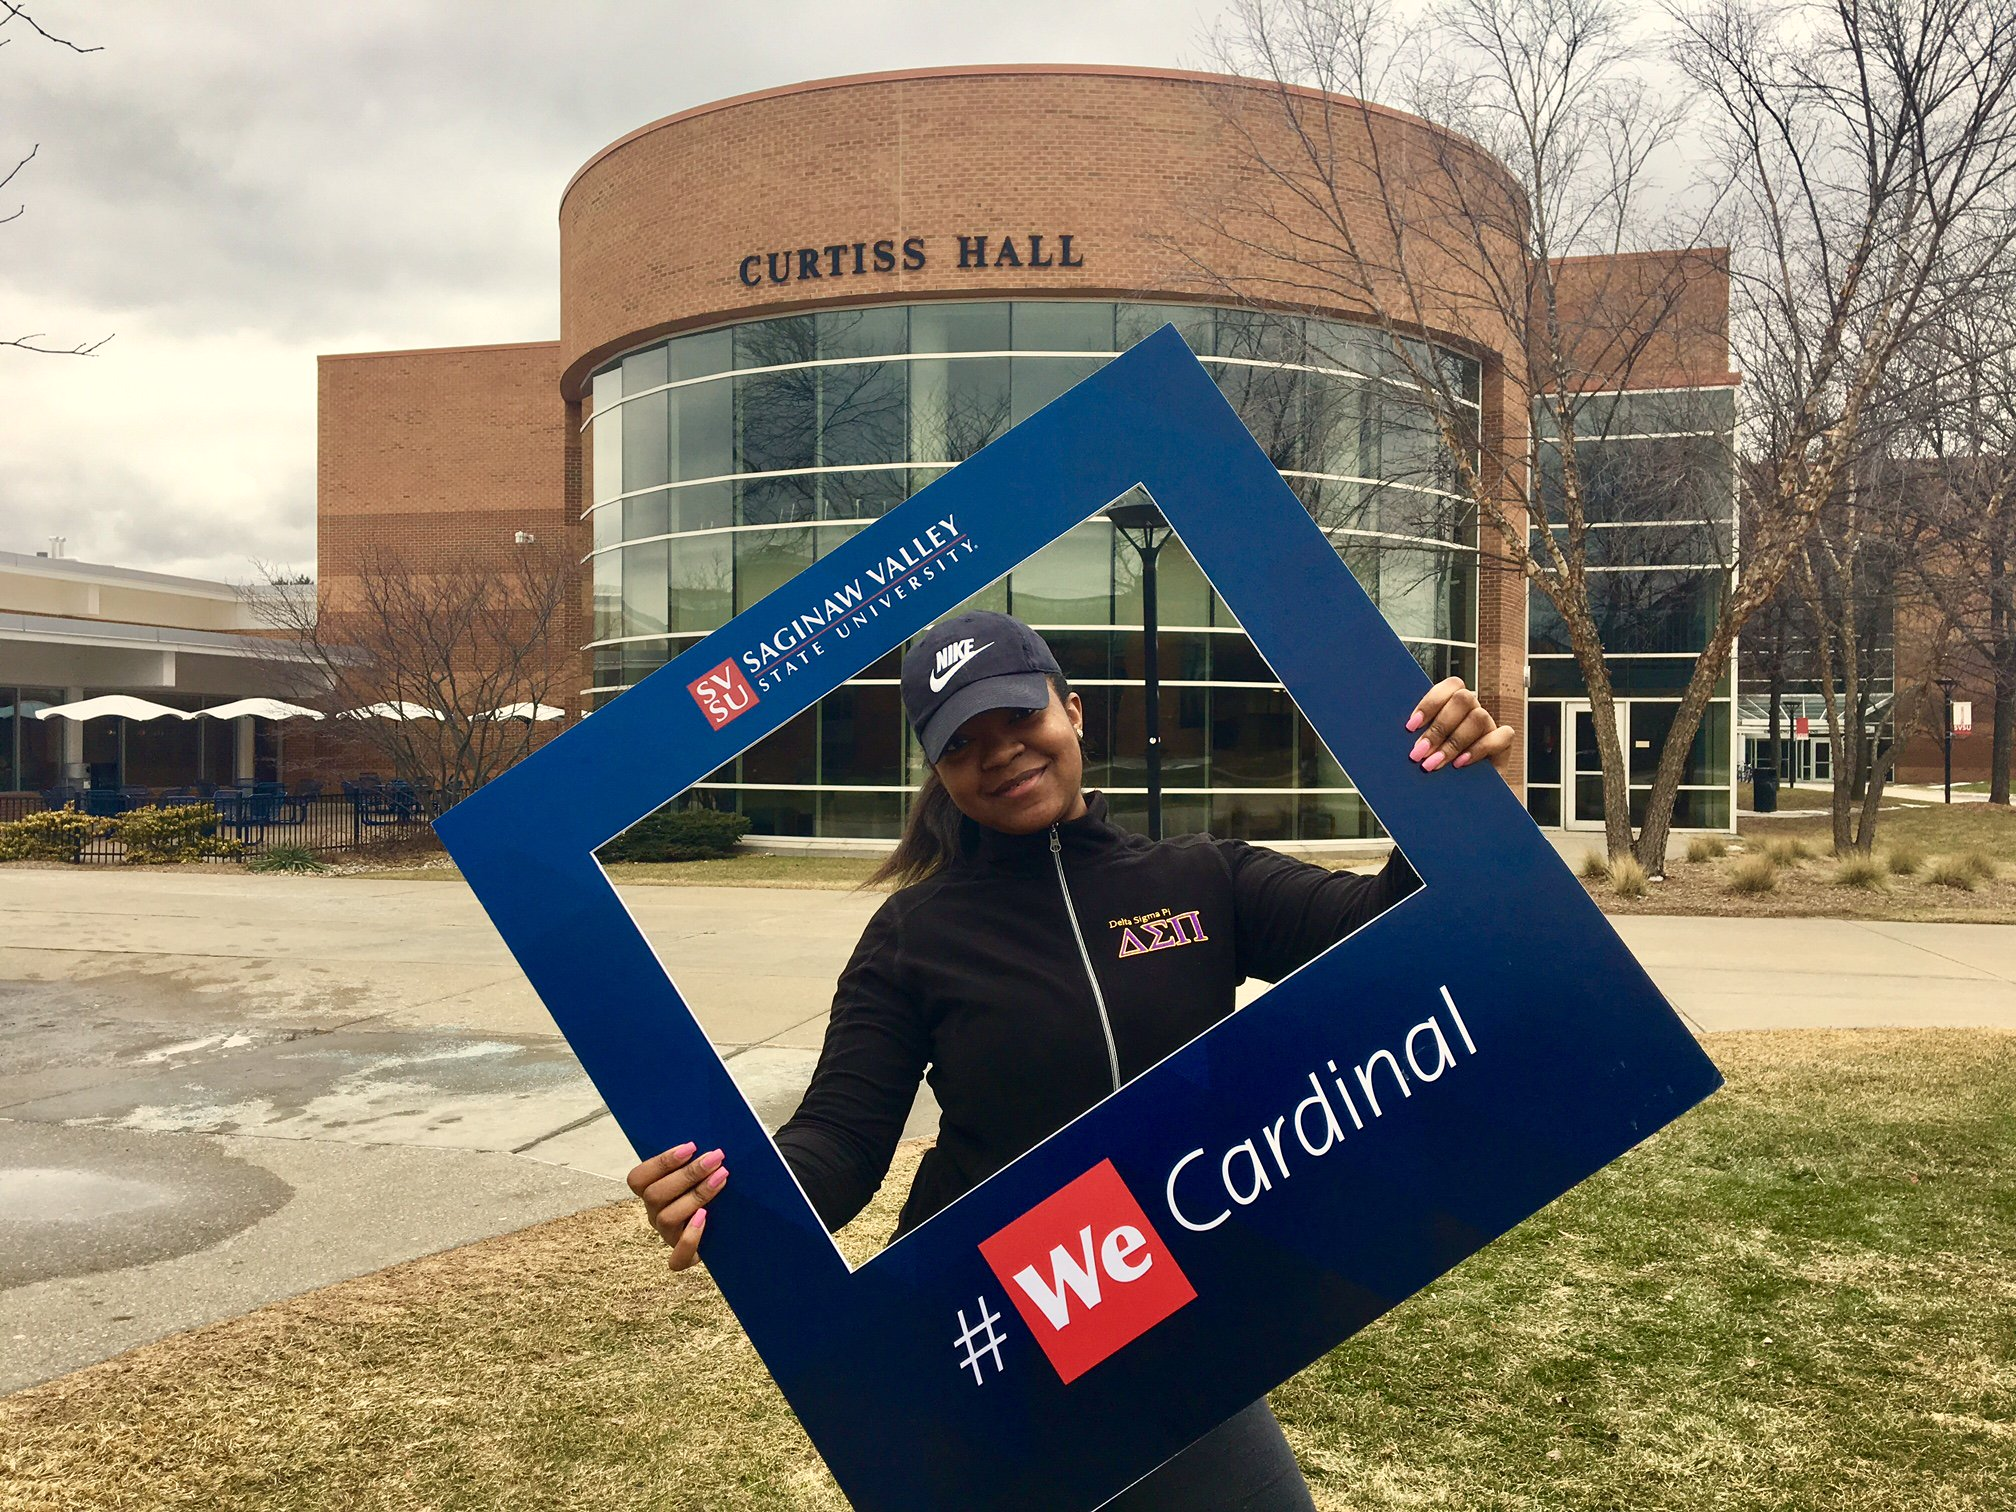 Meet Demetria, a Business Management major who is showing off her Red Pride today outside Curtiss Hall! Thanks for sharing! #WeCardinal https://t.co/ZPVW8xwSq3